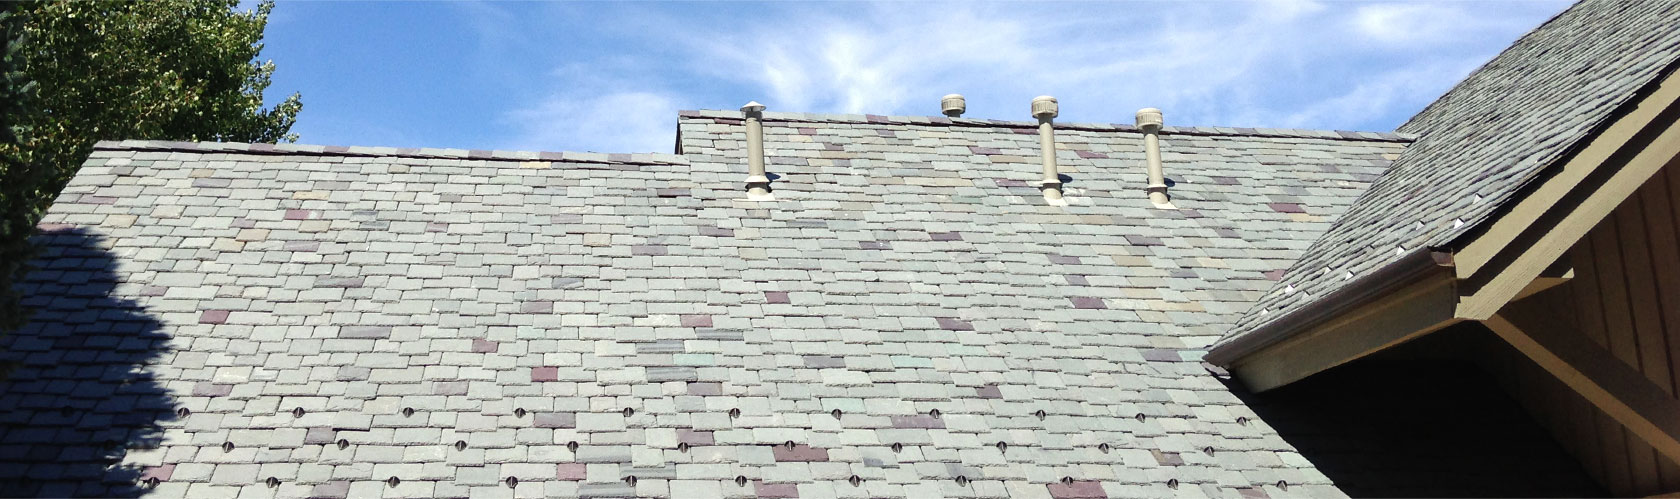 Advanced technology makes genuine slate and handcrafted clay tiles attainable for all projects